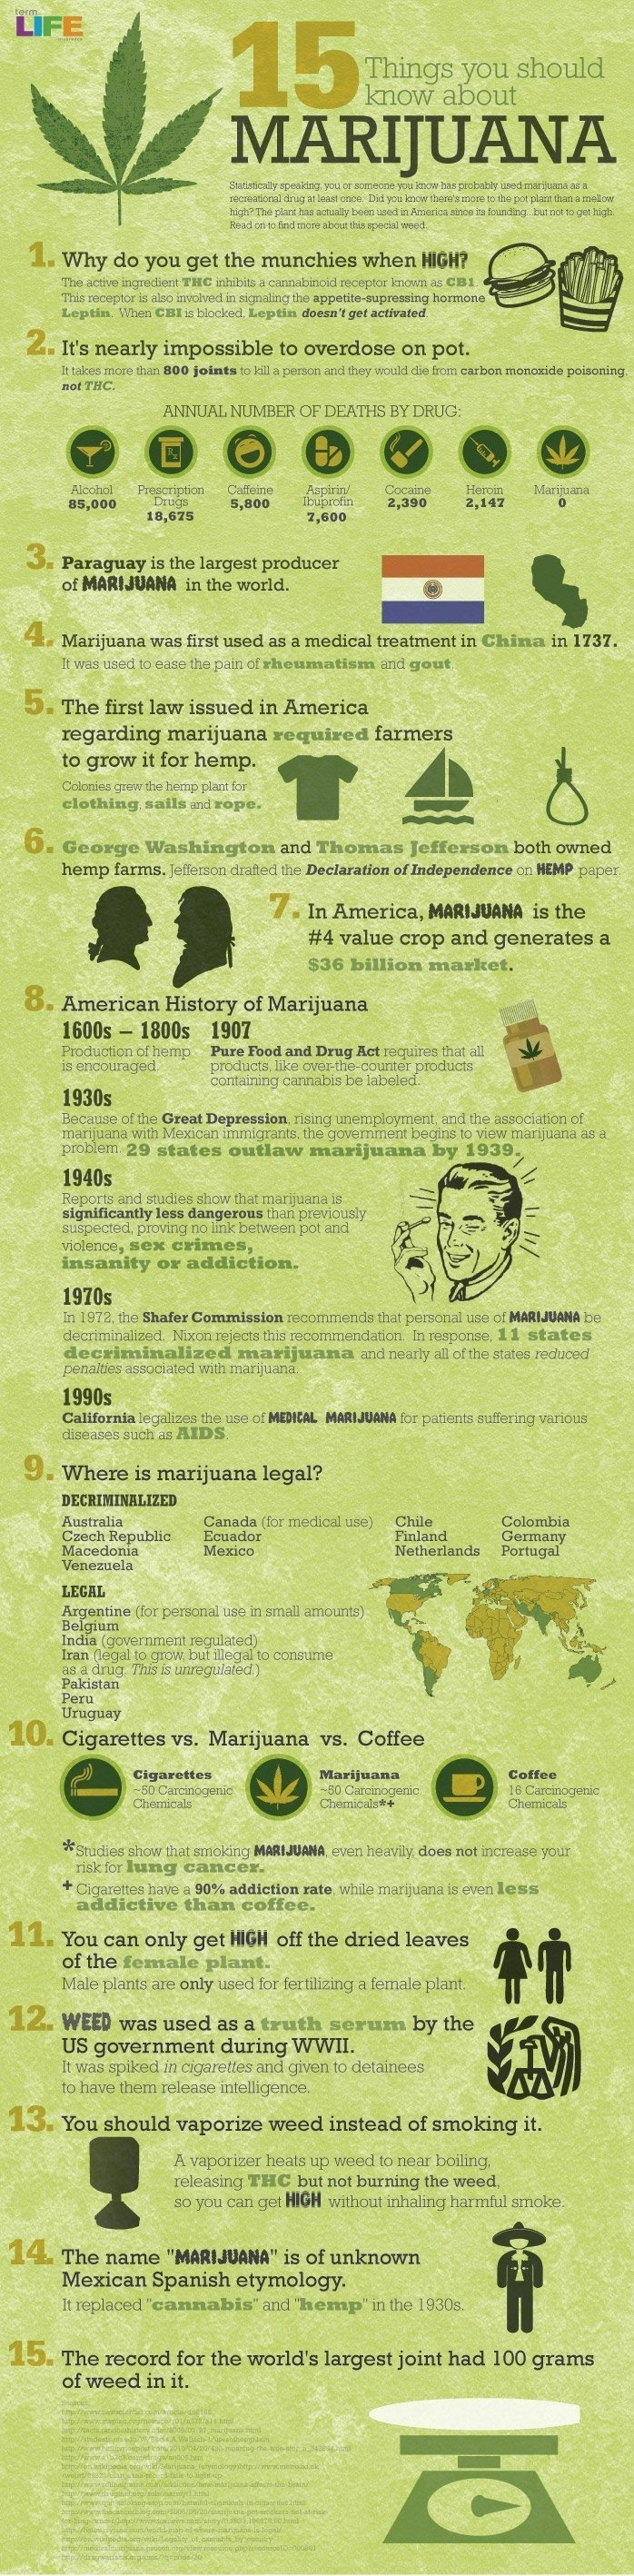 15 things you should know about marijuana. I'm not taking a stand on whether cannabis should or should not be used recreational. I've known too many people who have benefited from it medicinally, so I'm supportive of that.